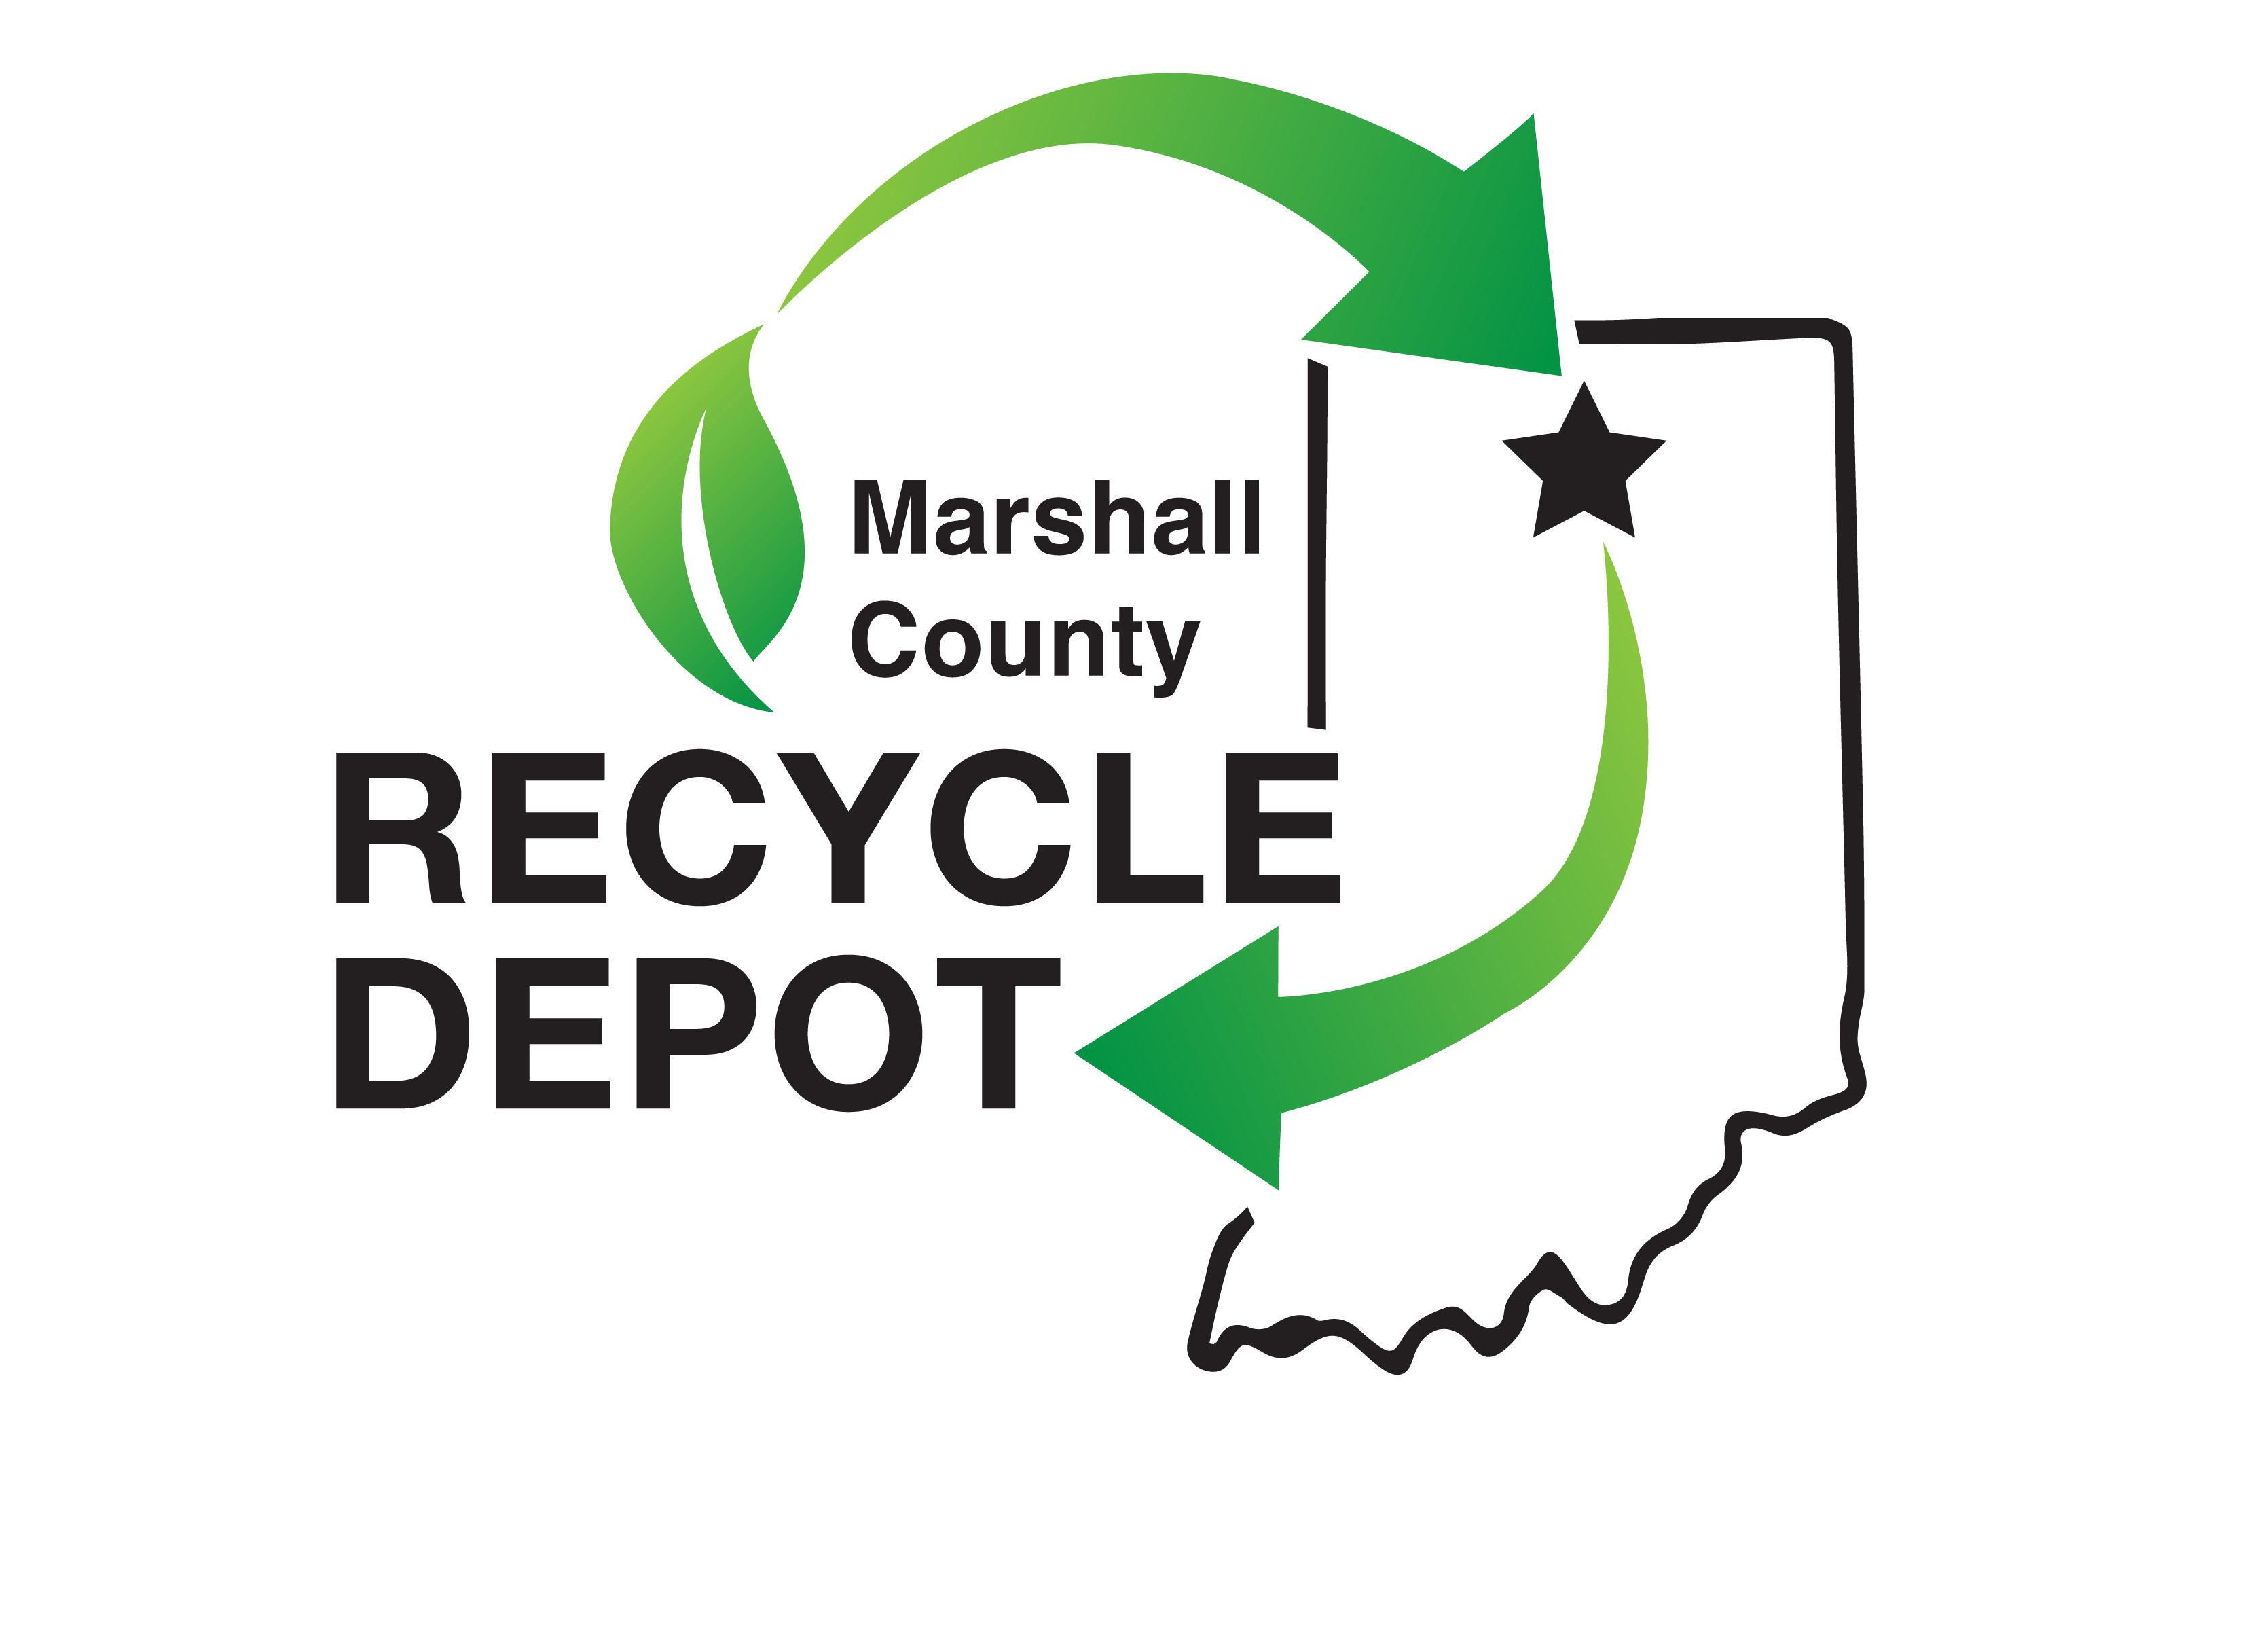 Marshall County Solid Waste Management District